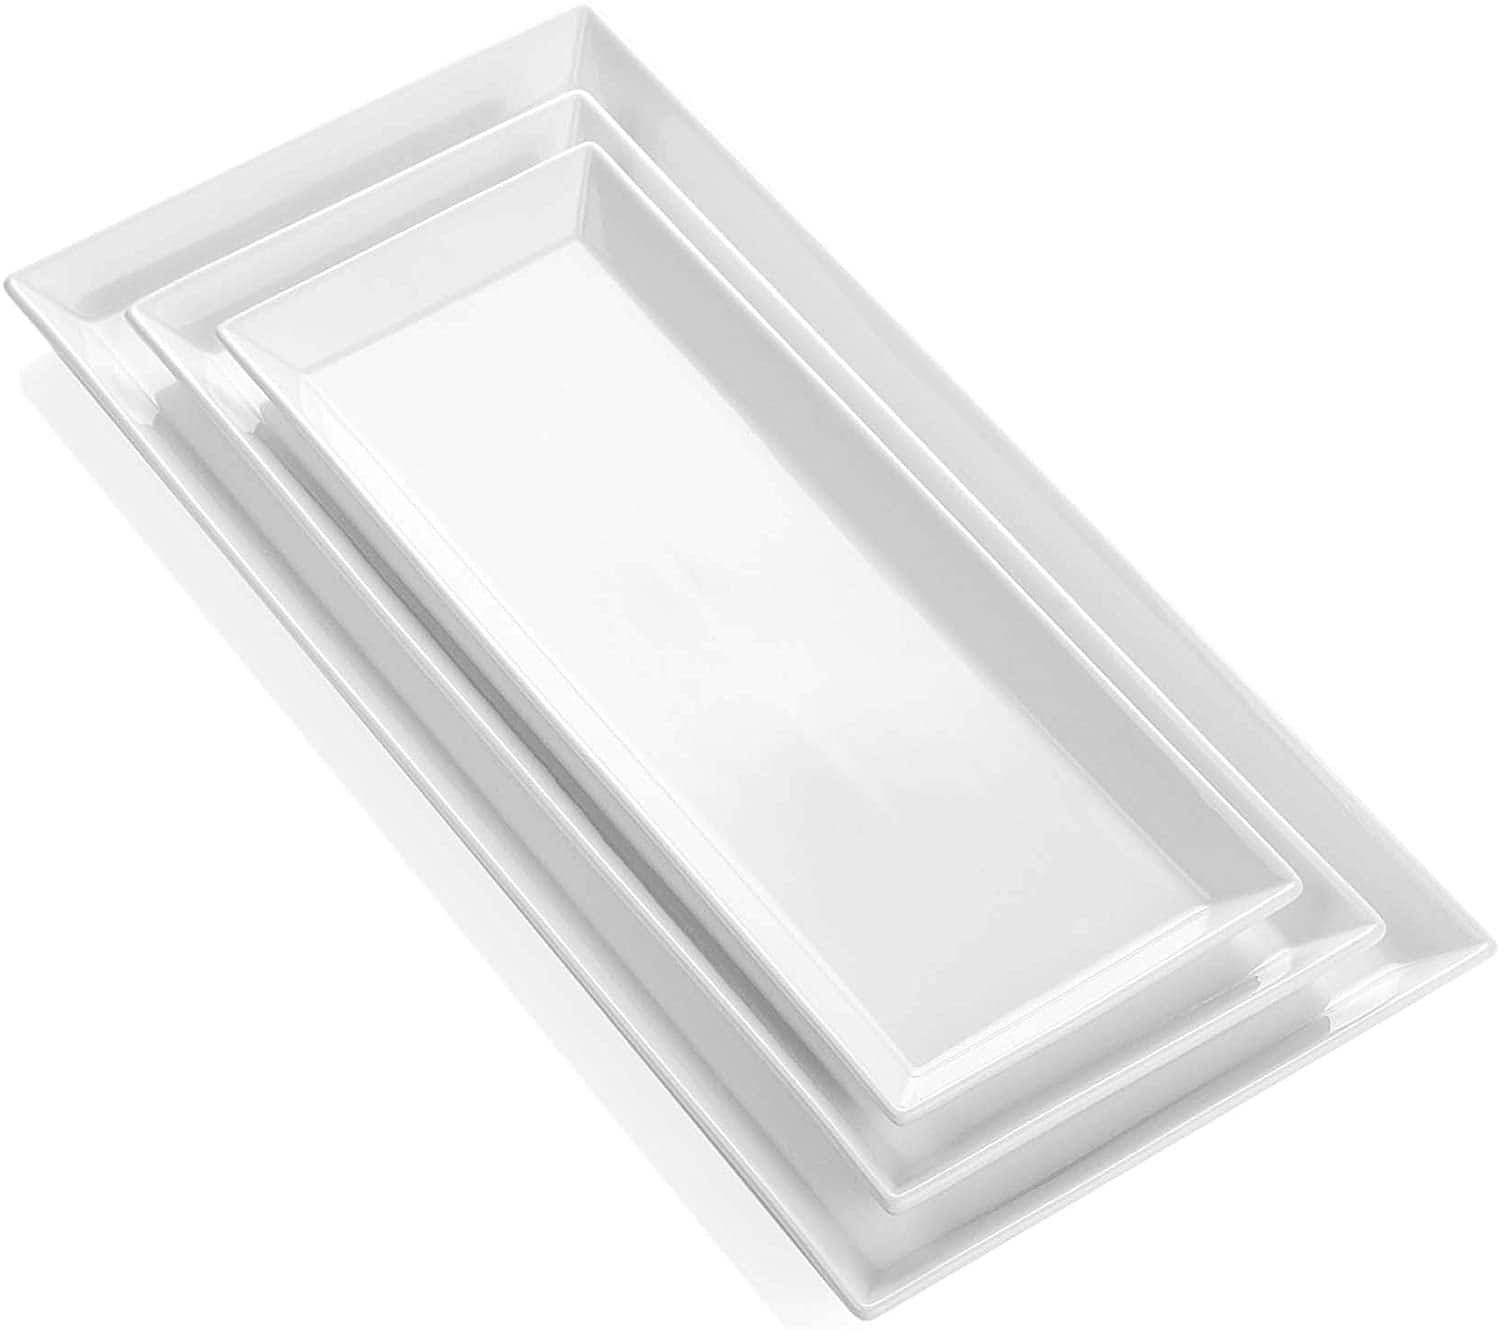 Rectangular Porcelain Serving Trays Platters - Set of 3 $19.82